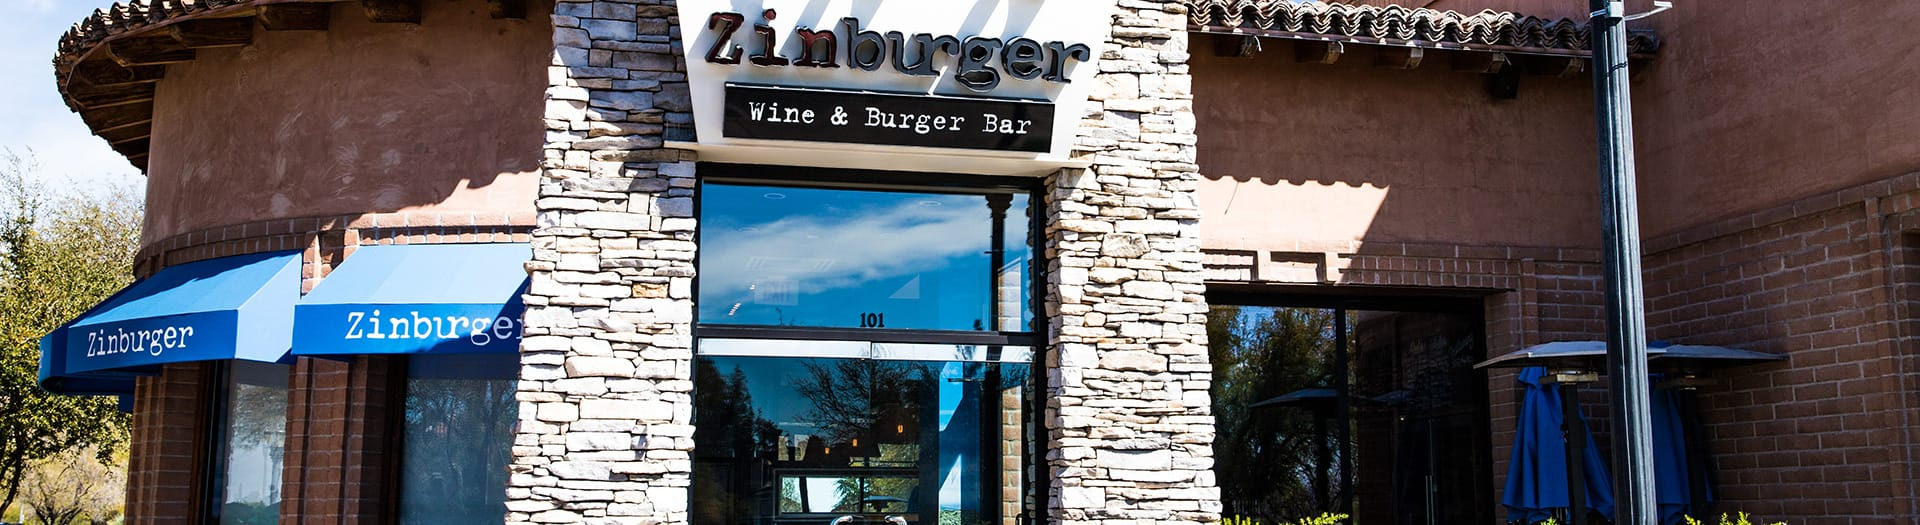 Zinburger – River Road – Tucson - Tucson, AZ